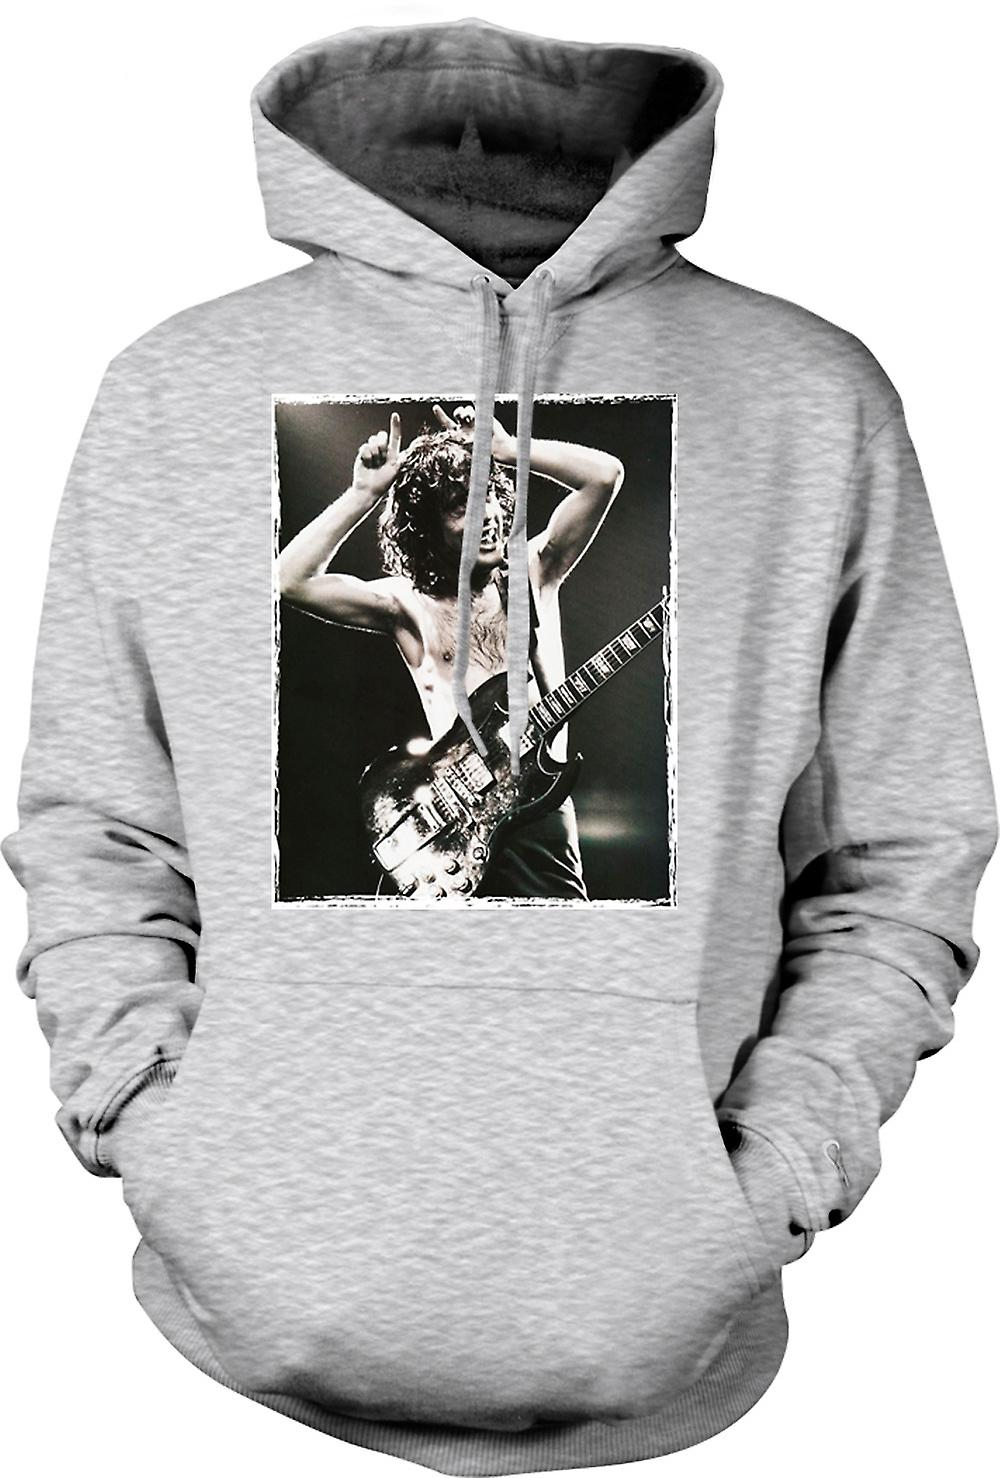 Mens Hoodie - AC/DC - Angus Young portret